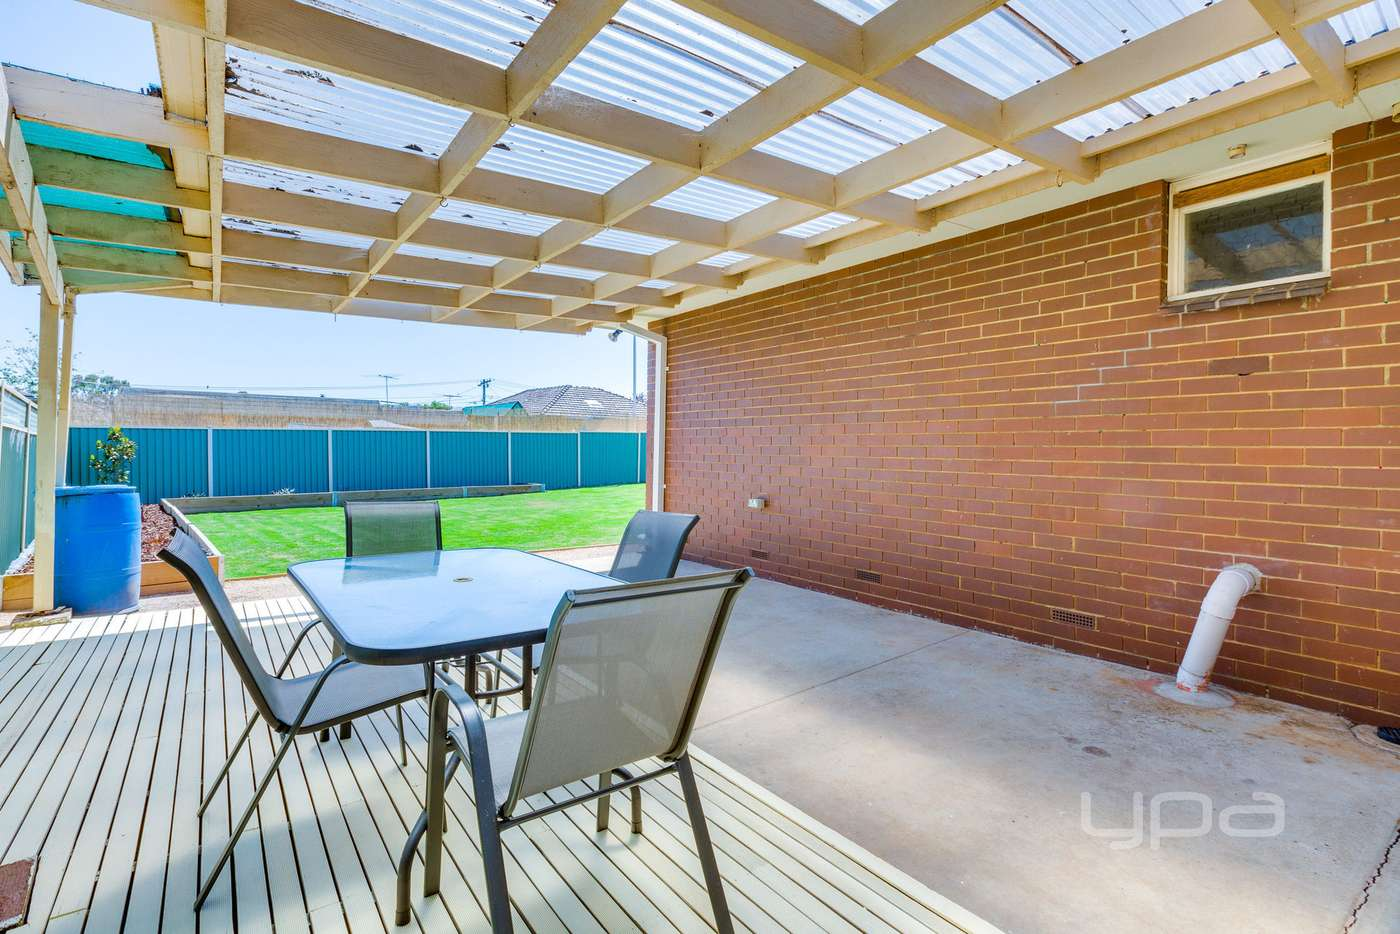 Seventh view of Homely house listing, 18 Greenwood Street, Wyndham Vale VIC 3024